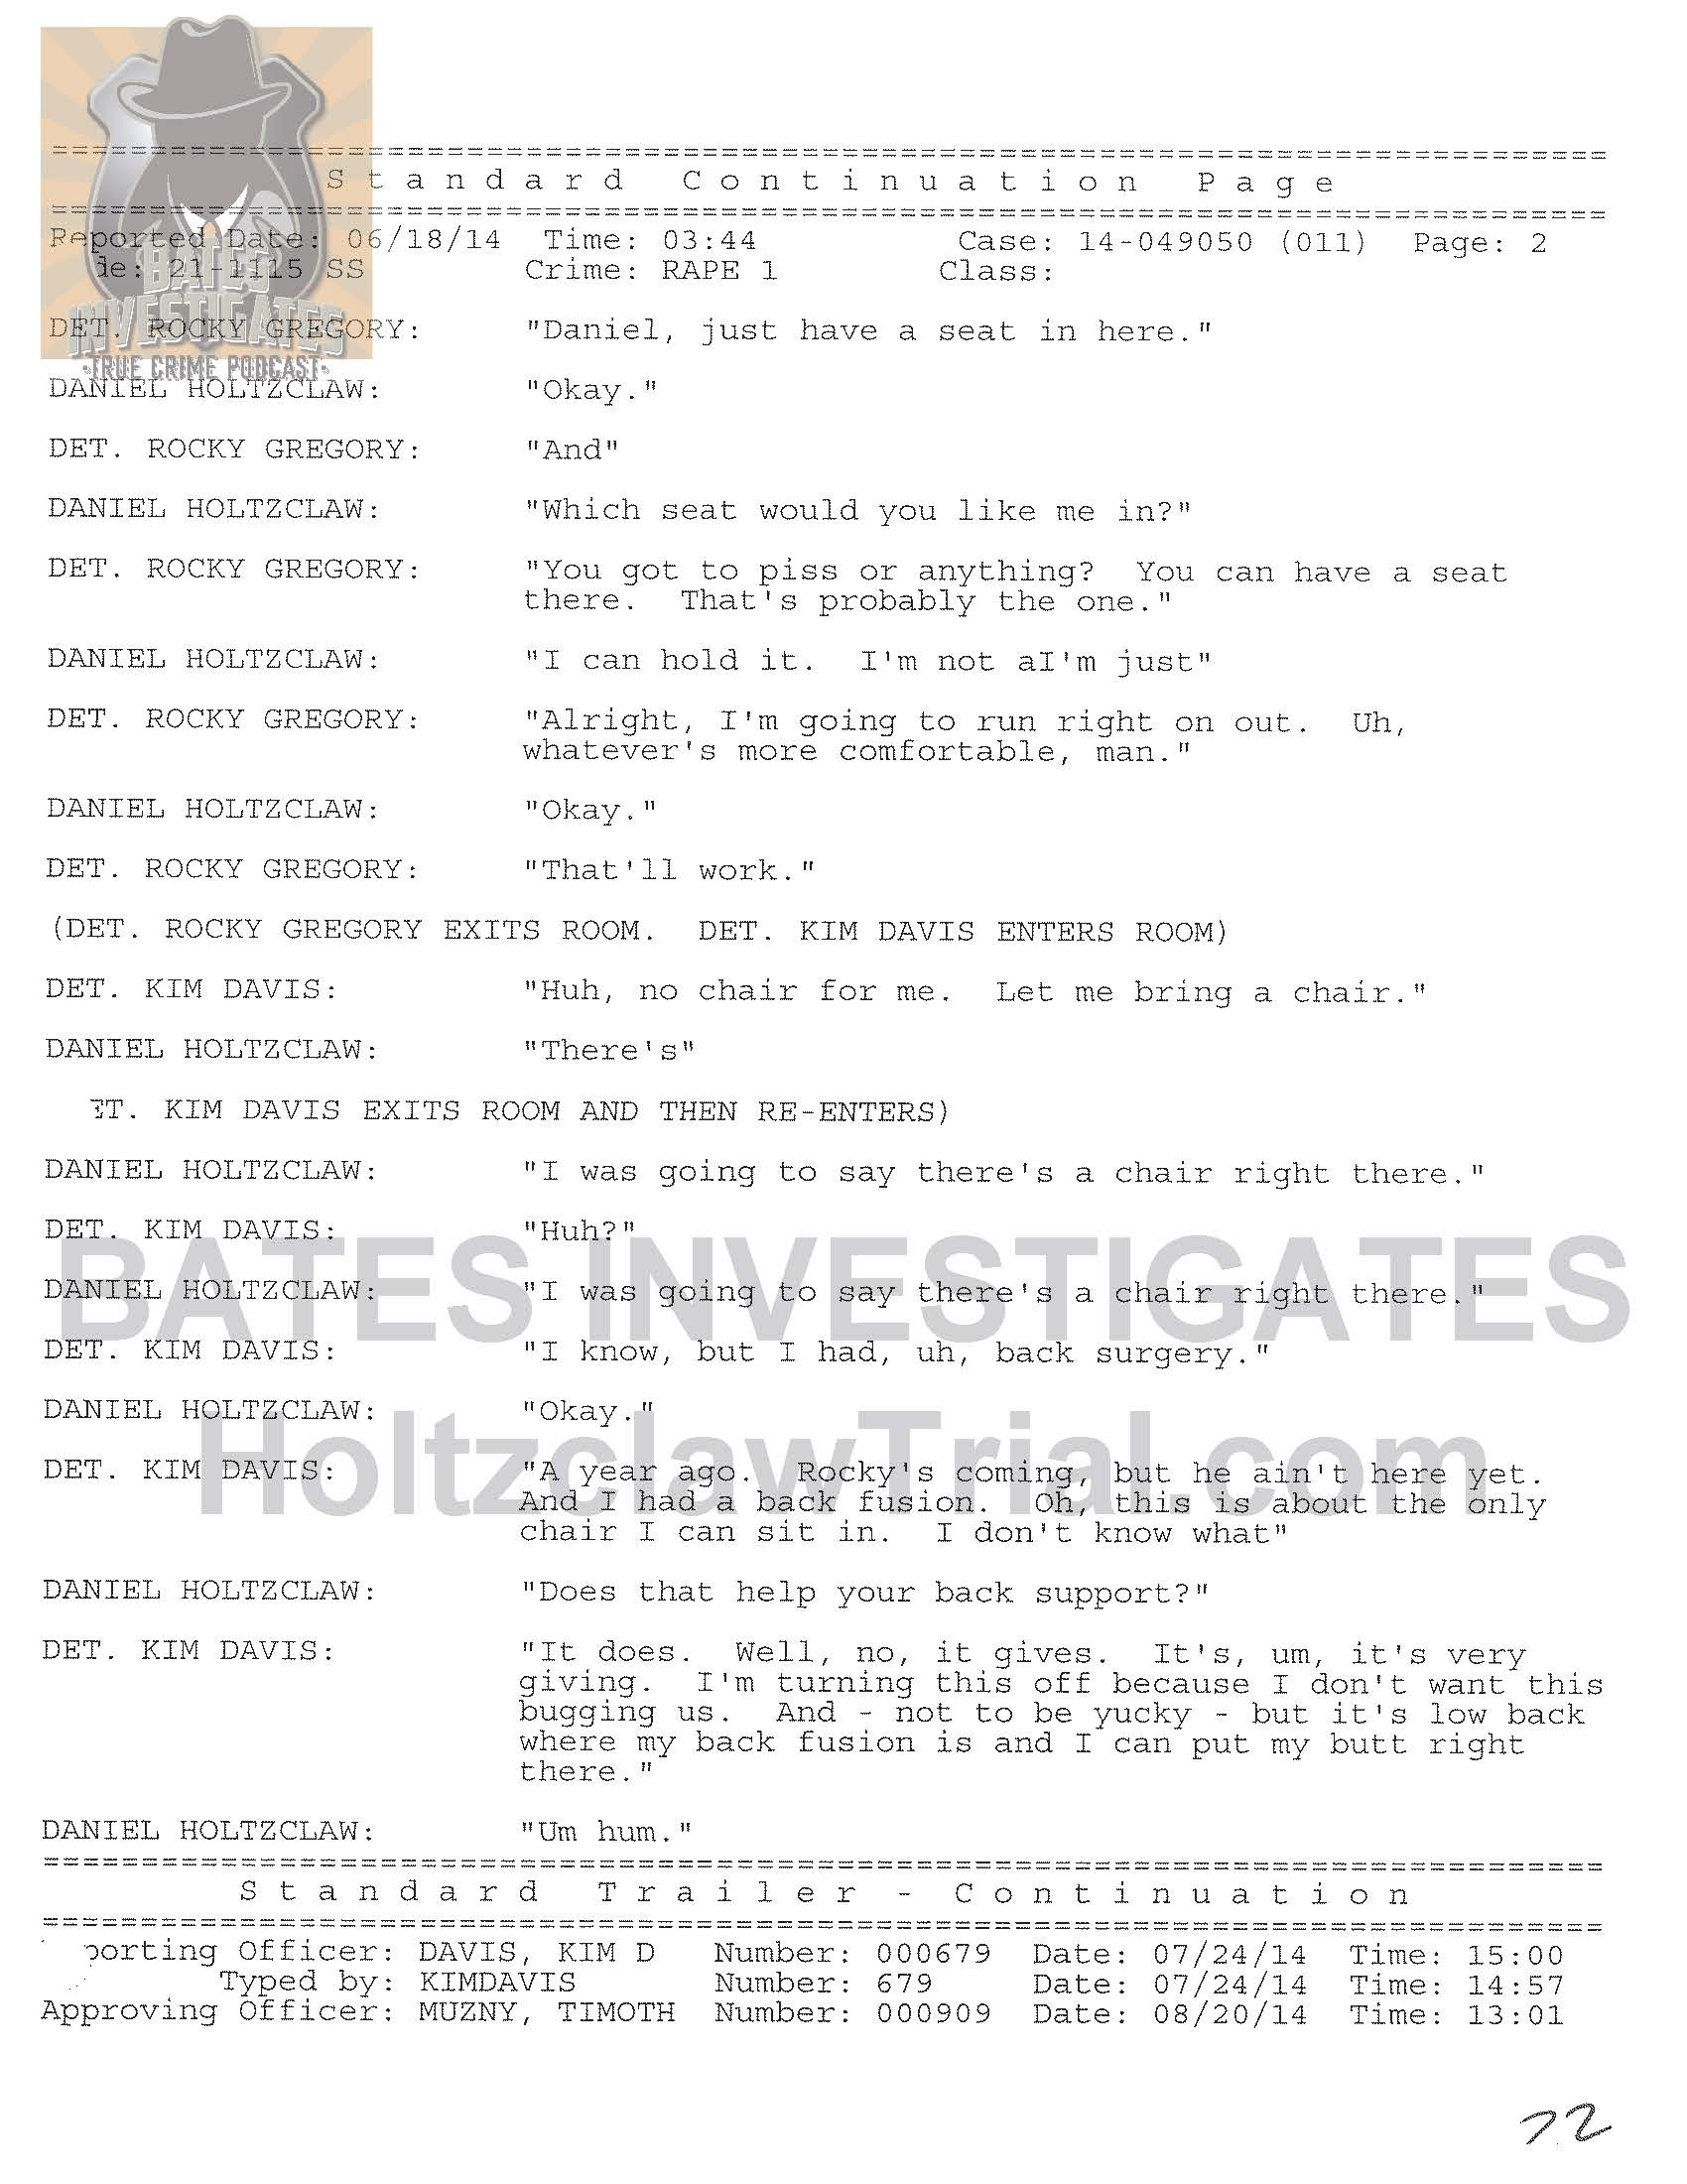 Holtzclaw Interrogation Transcript - Ep02 Redacted_Page_02.jpg